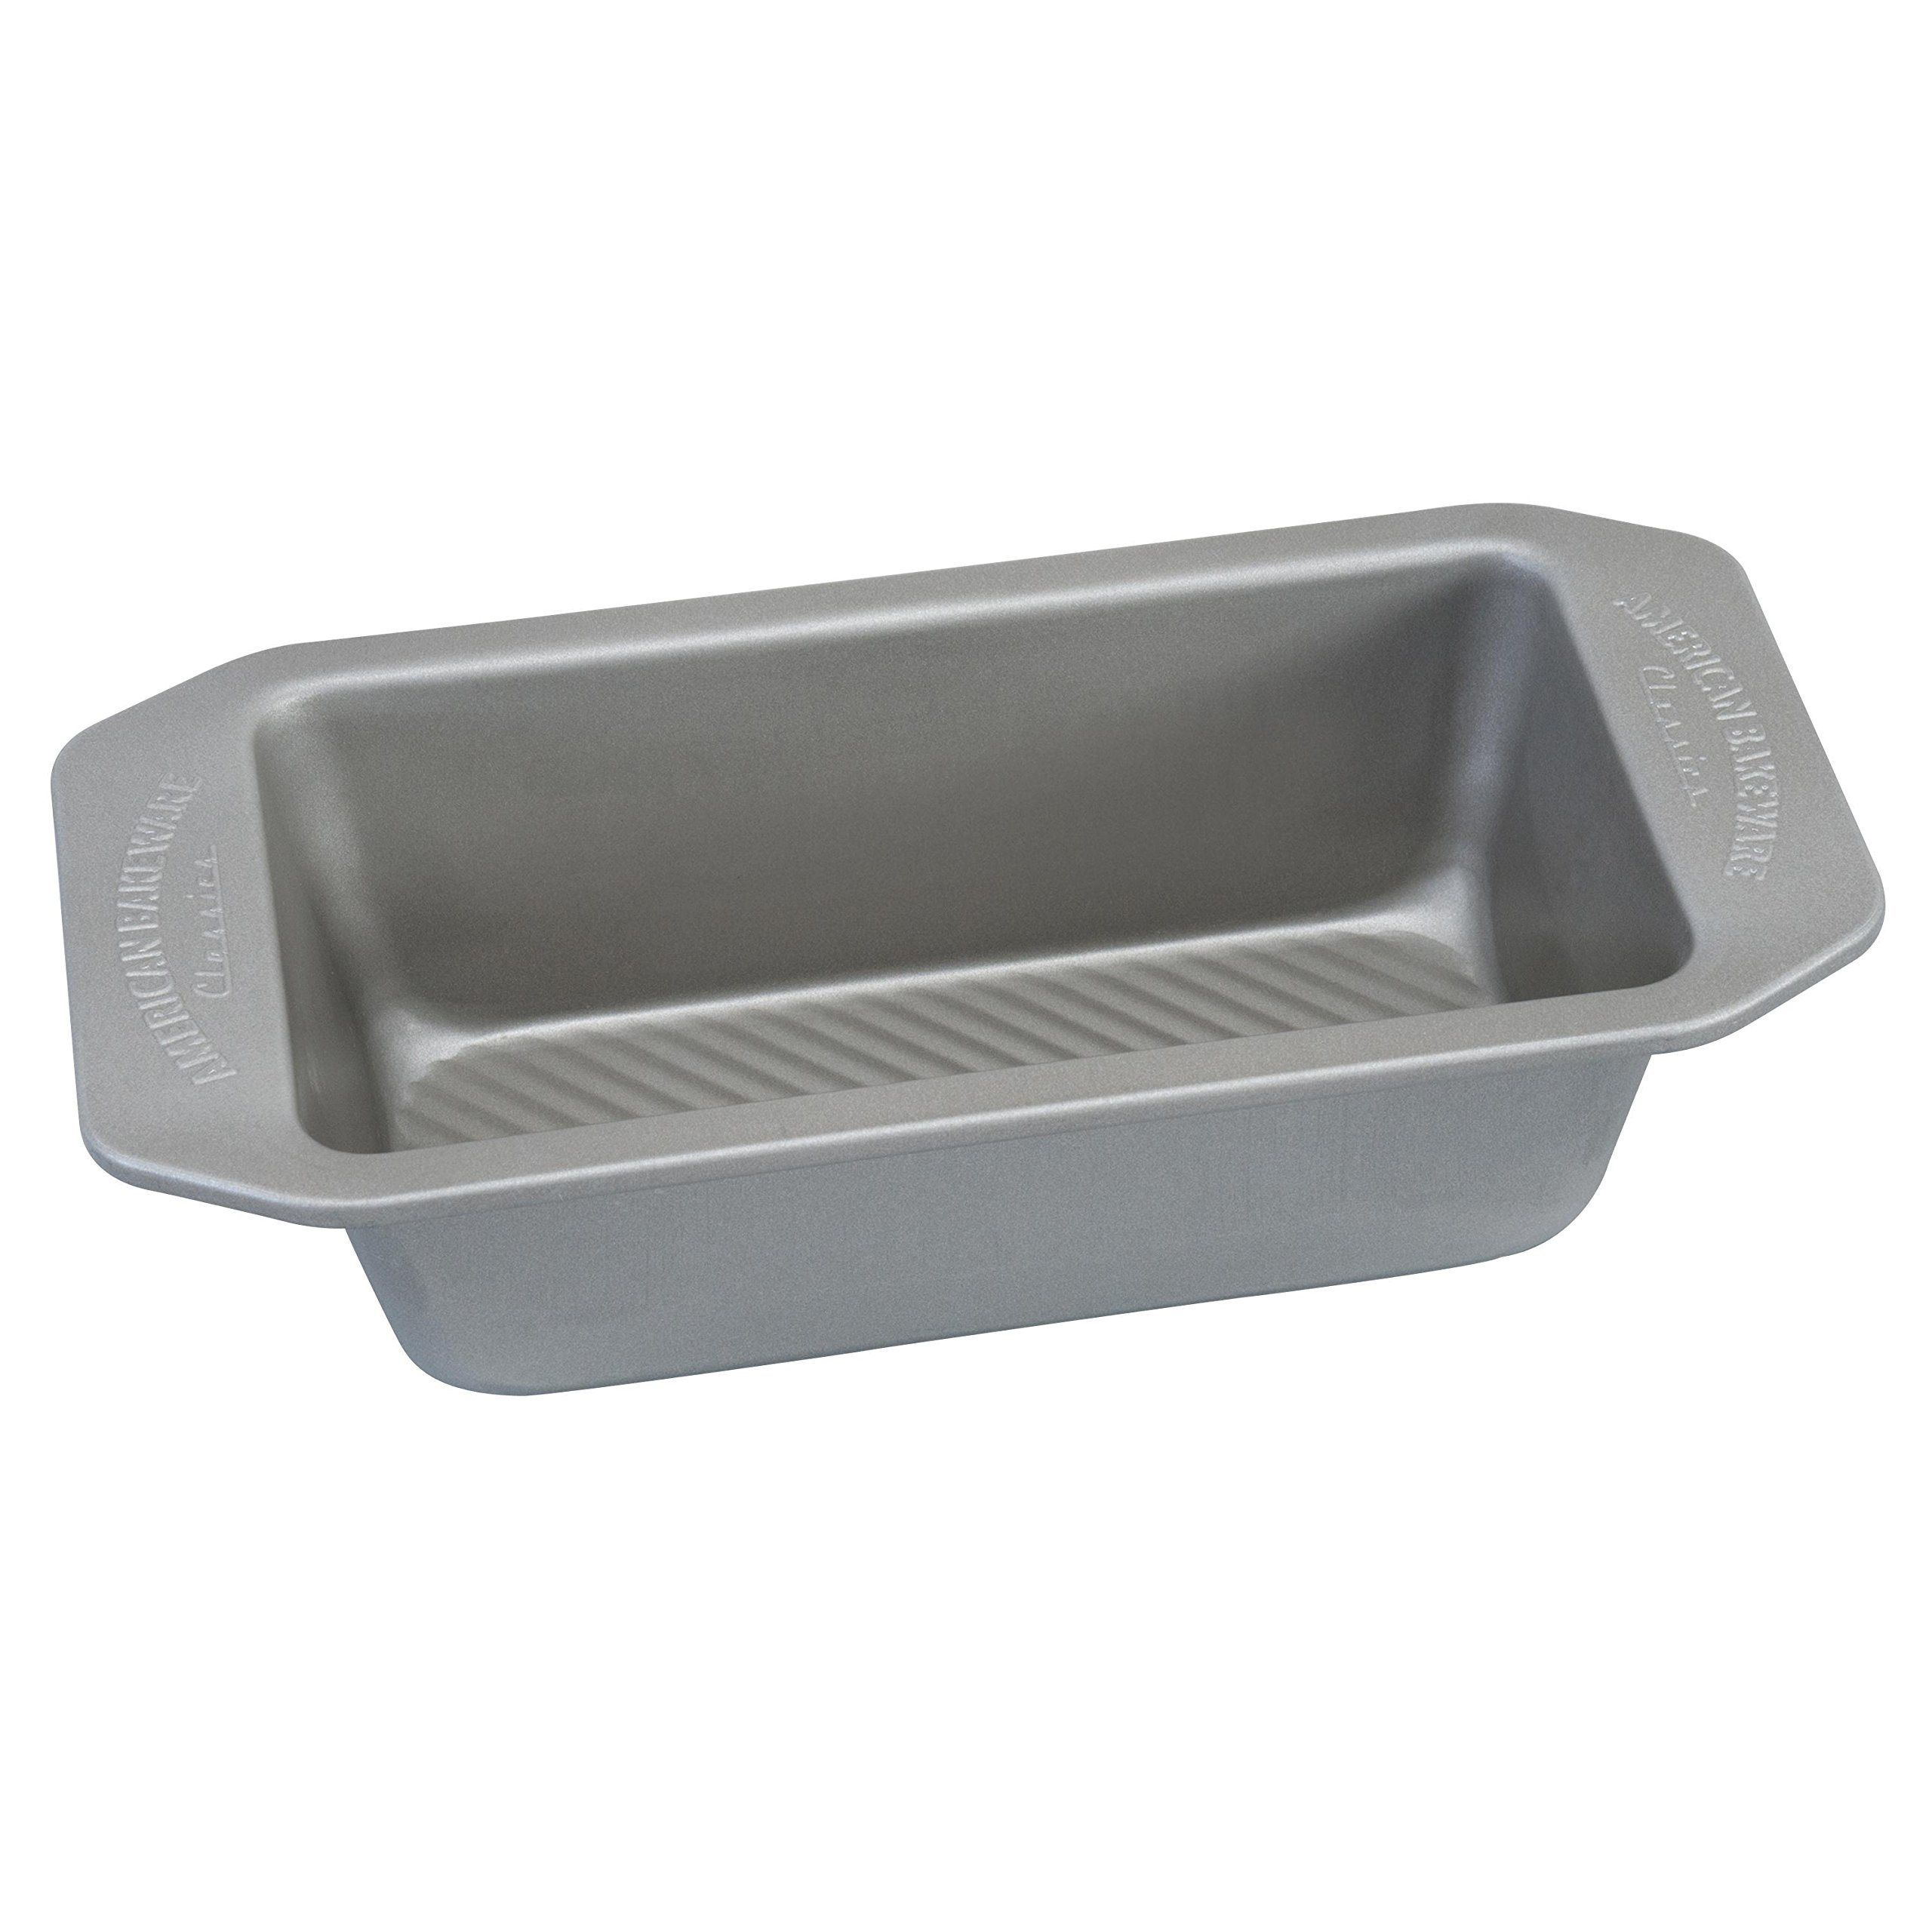 USA Pan 1140LF-2-ABC American Bakeware Classics 1 Pound Loaf Baking Pan, Aluminized Steel by USA Pan